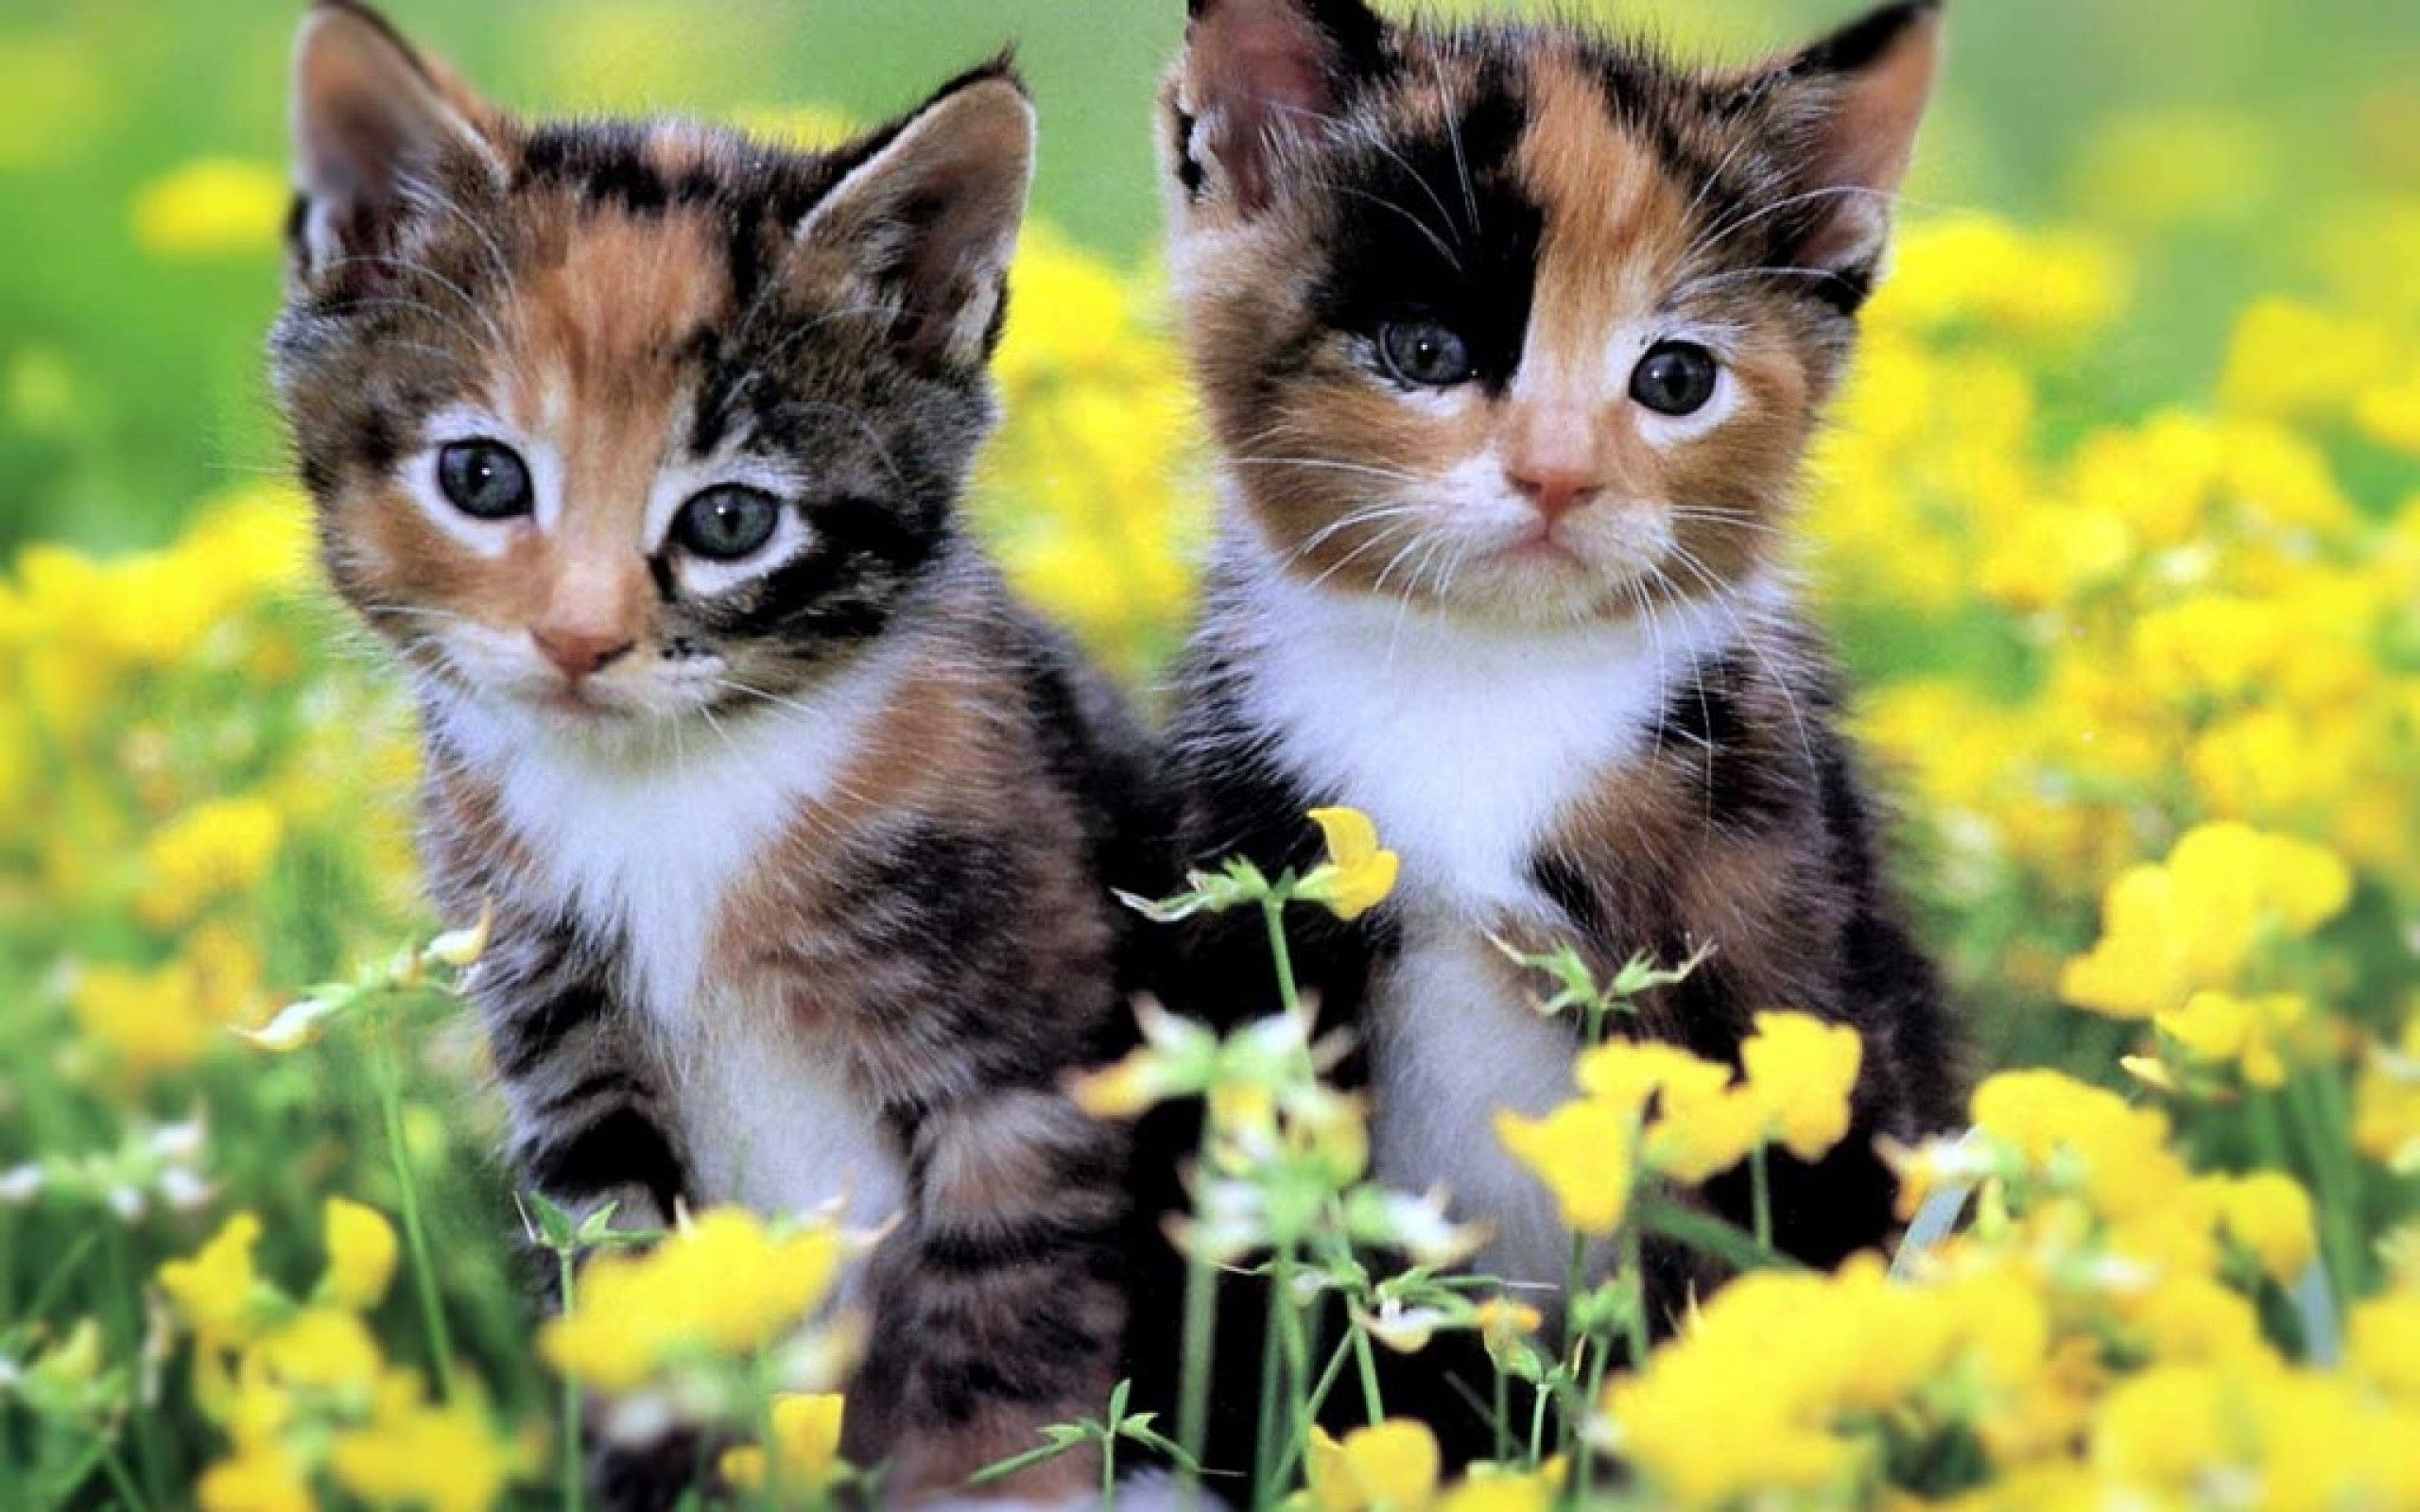 cute baby kittens wallpaper Homepage » Cat » two cute